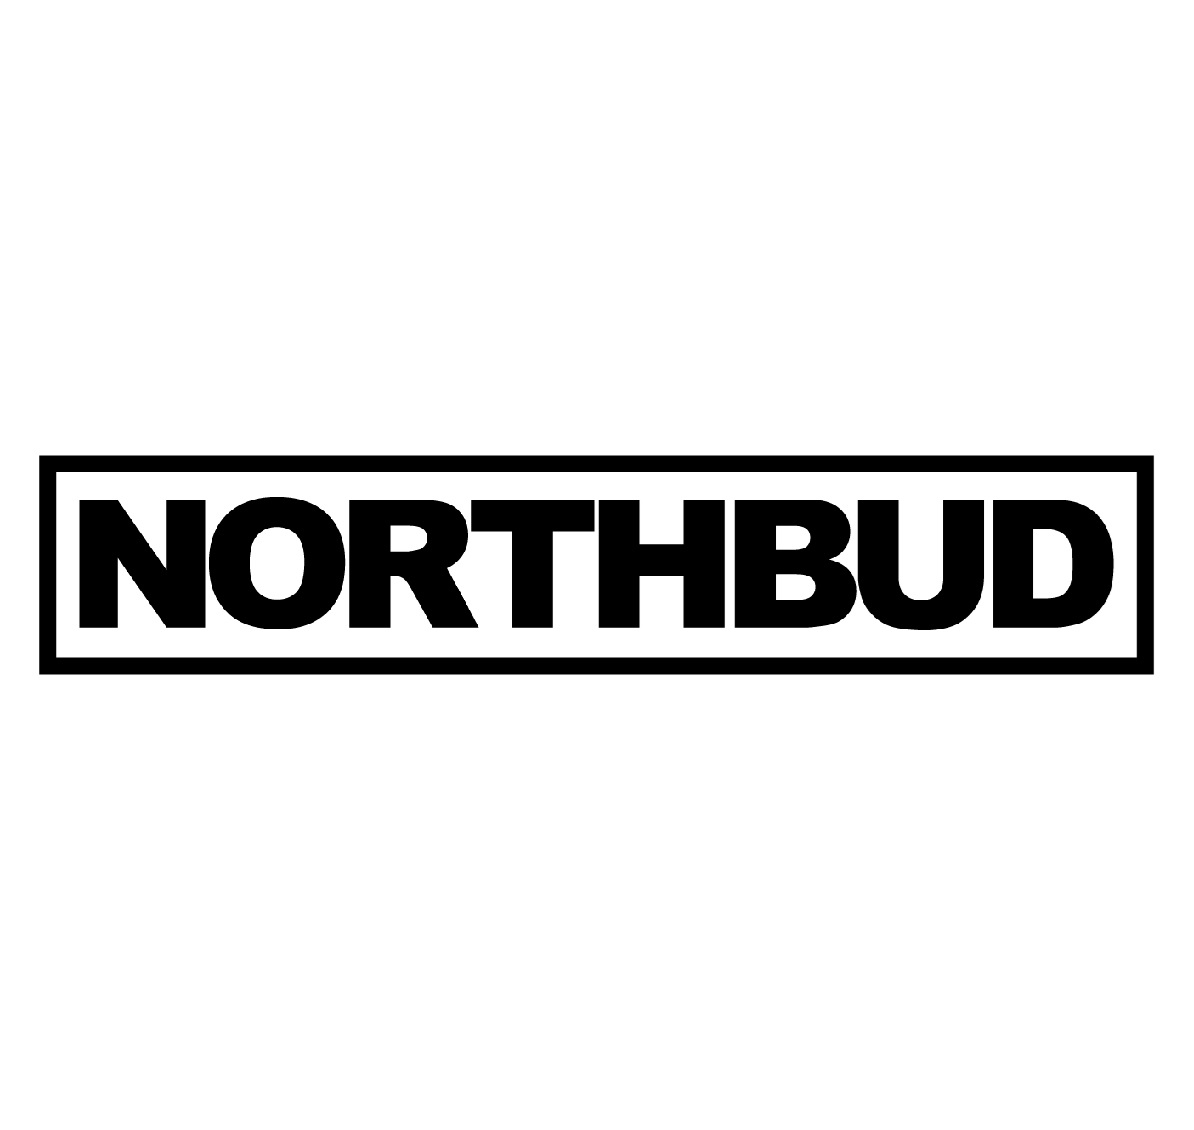 North Bud Farms Expands U.S